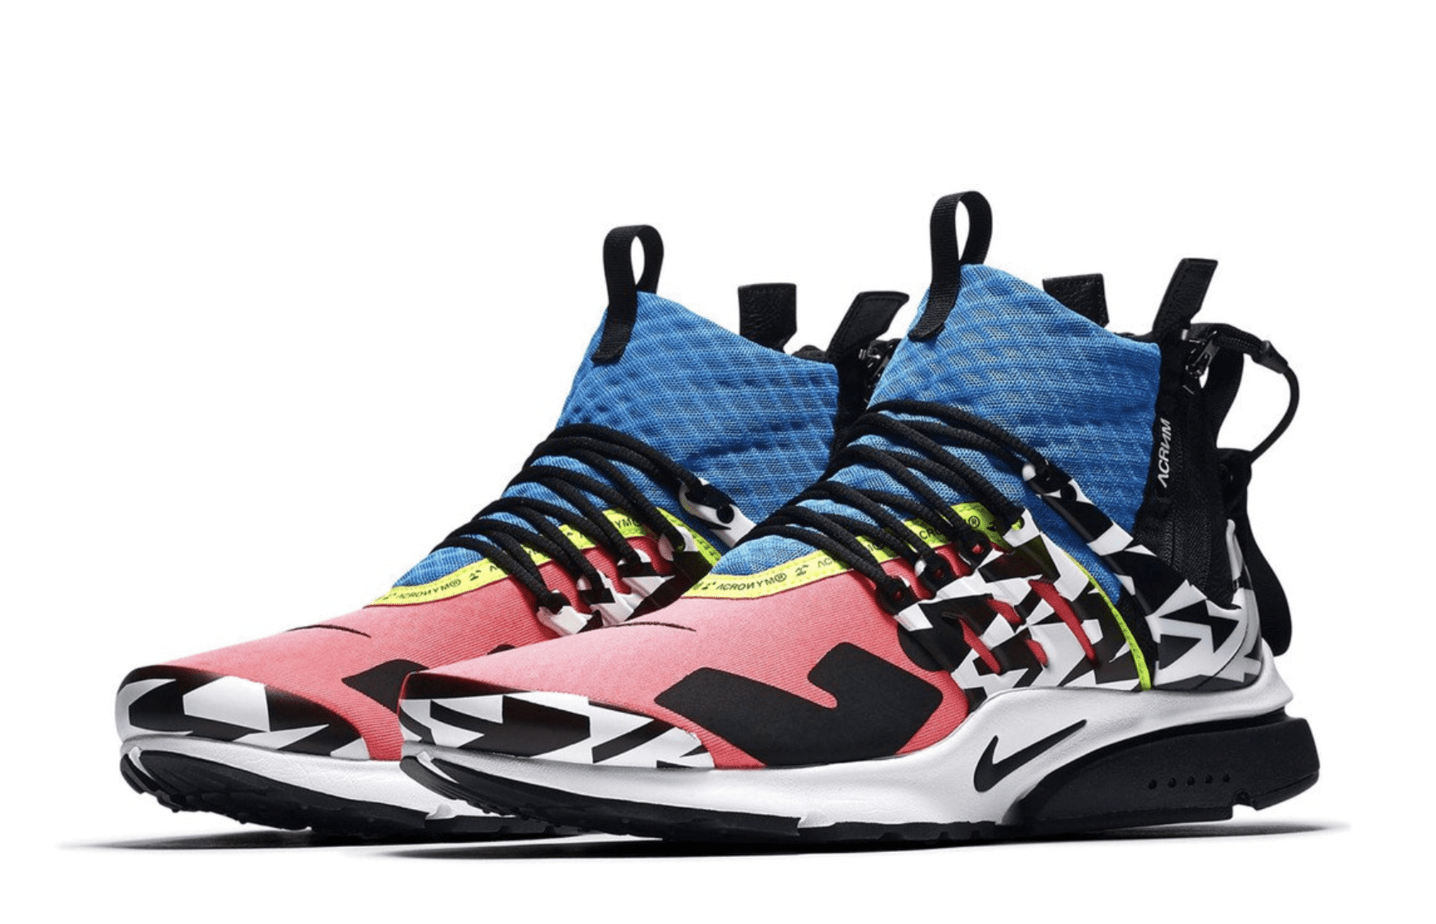 new arrival 19713 747f0 Acronym x Nike Air Presto Mid Release Date September 20th, 2018. Price  200. Color WhiteDynamic Yellow-Black Color Cool GreyBlack